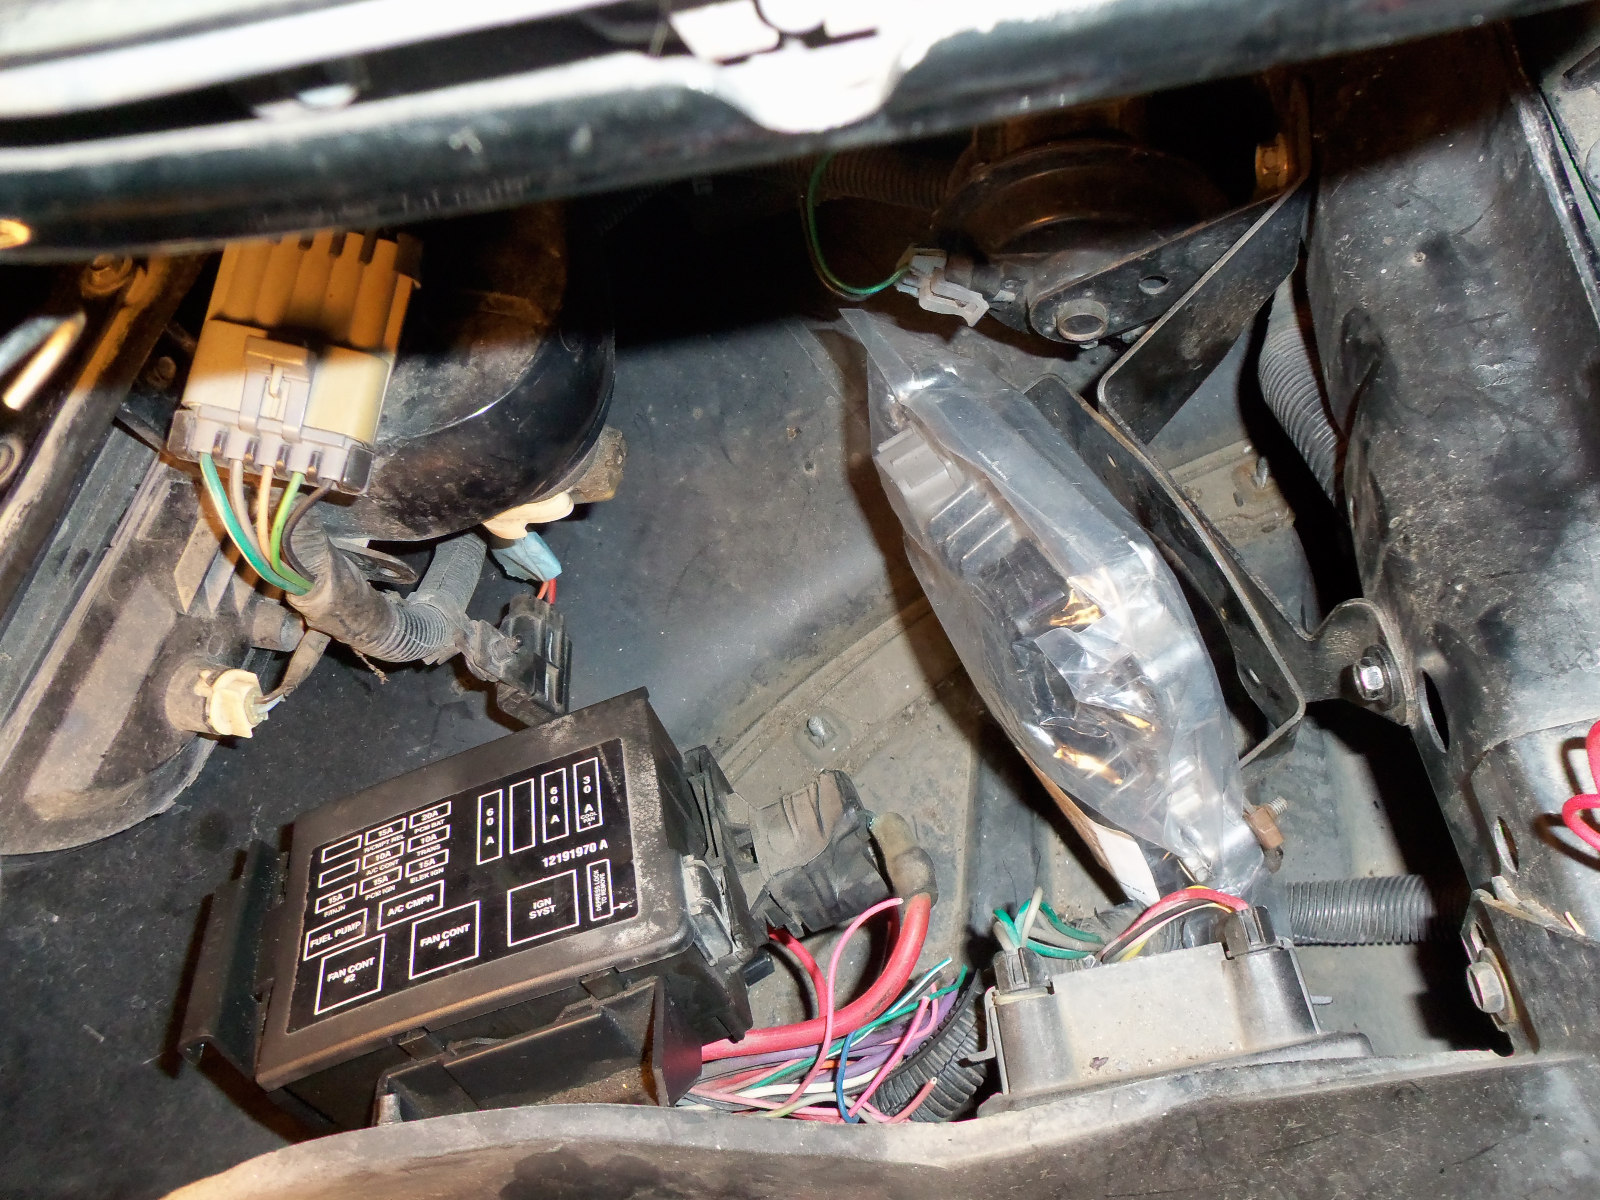 ls swap standalone fuse panel '92 lt1-c4 to l92/l99-t56 swap started - page 2 ...